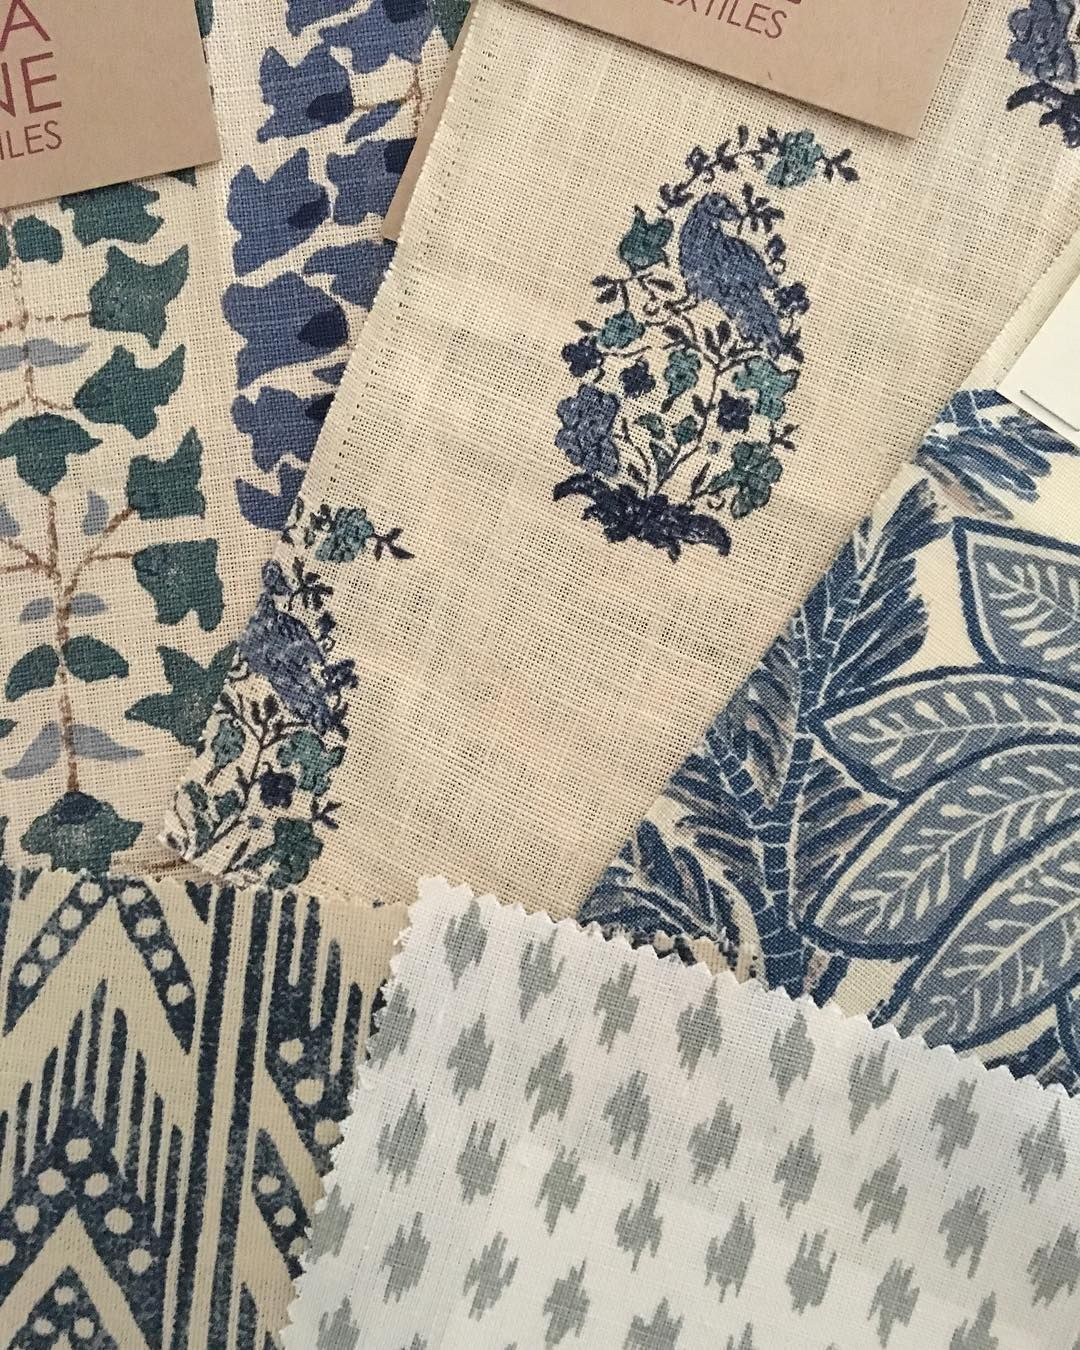 Bluesday Beautifully Hand Printed Linens From Lisa Fine Textiles Carolina Irving Textiles Hand Printed Linen